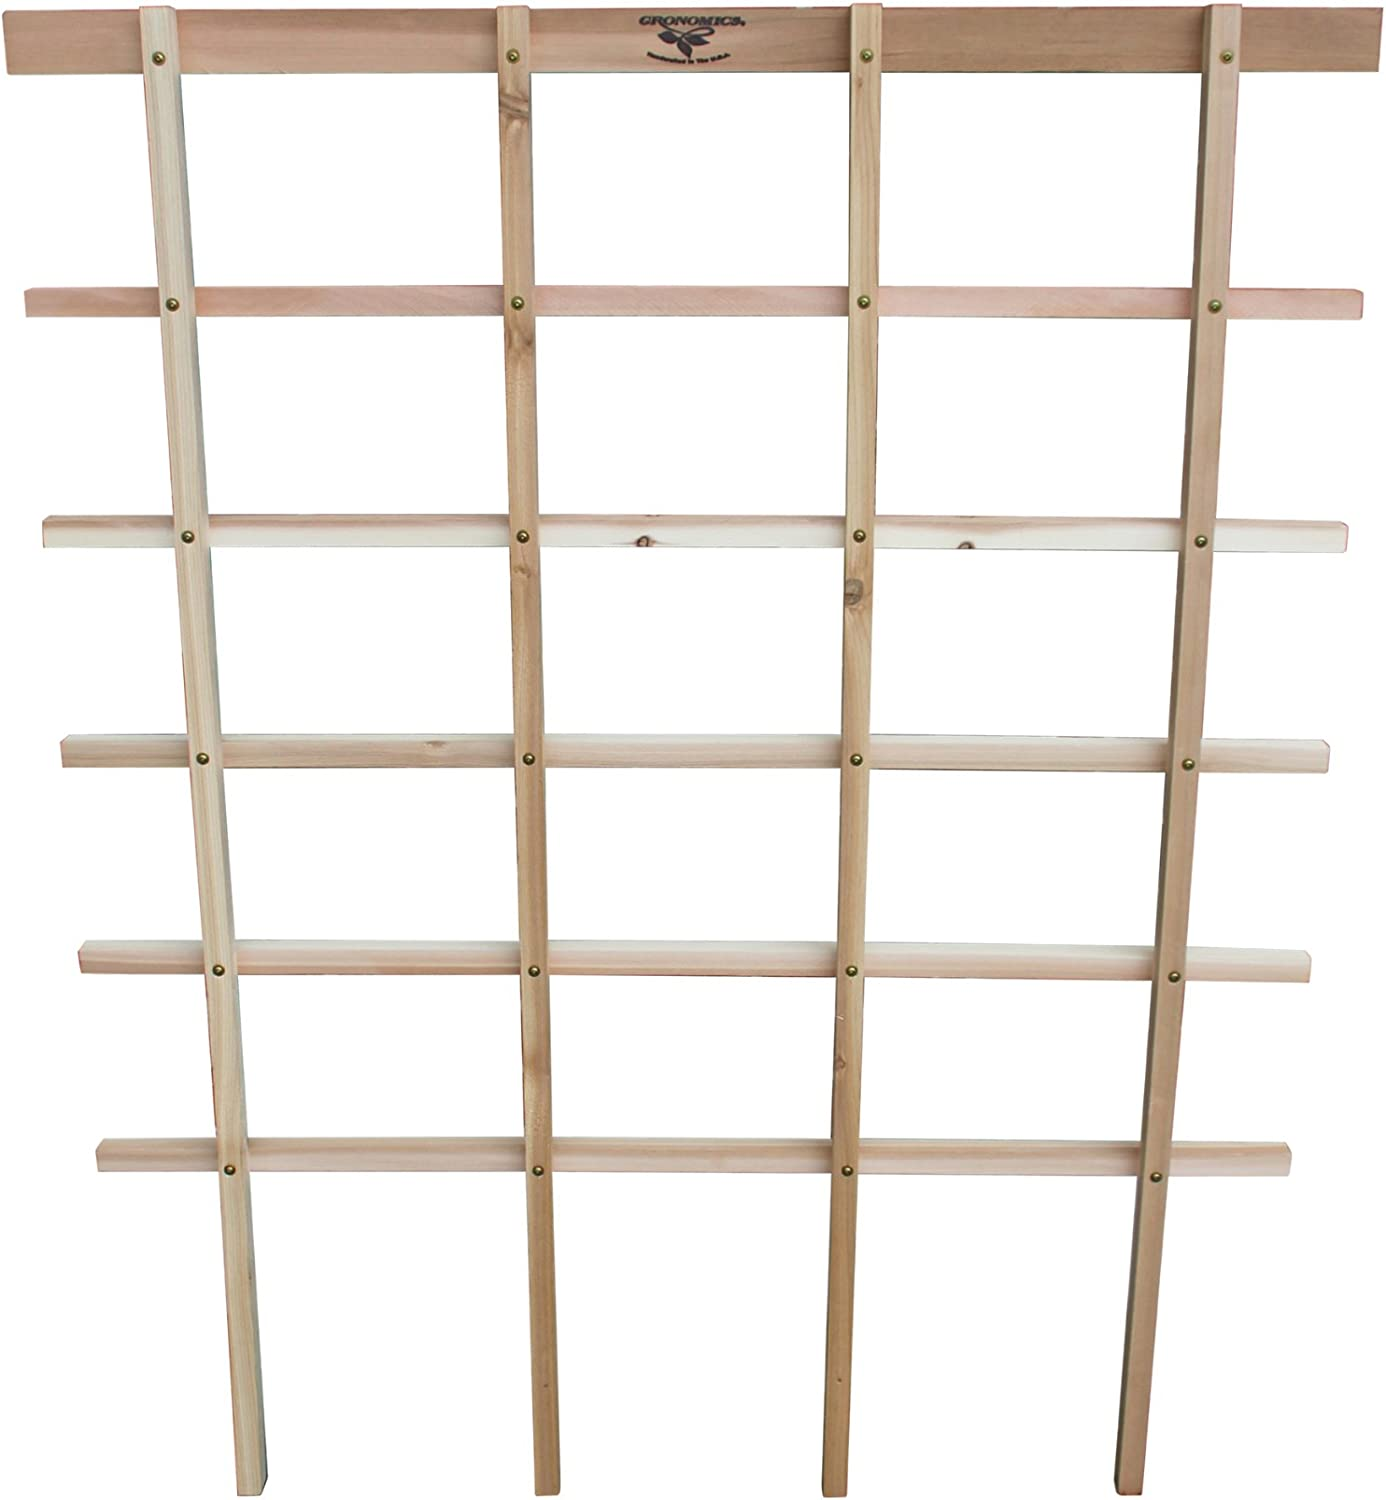 Gronomics FT 43-54 Folding Trellis Kit, 43 by 54-Inch